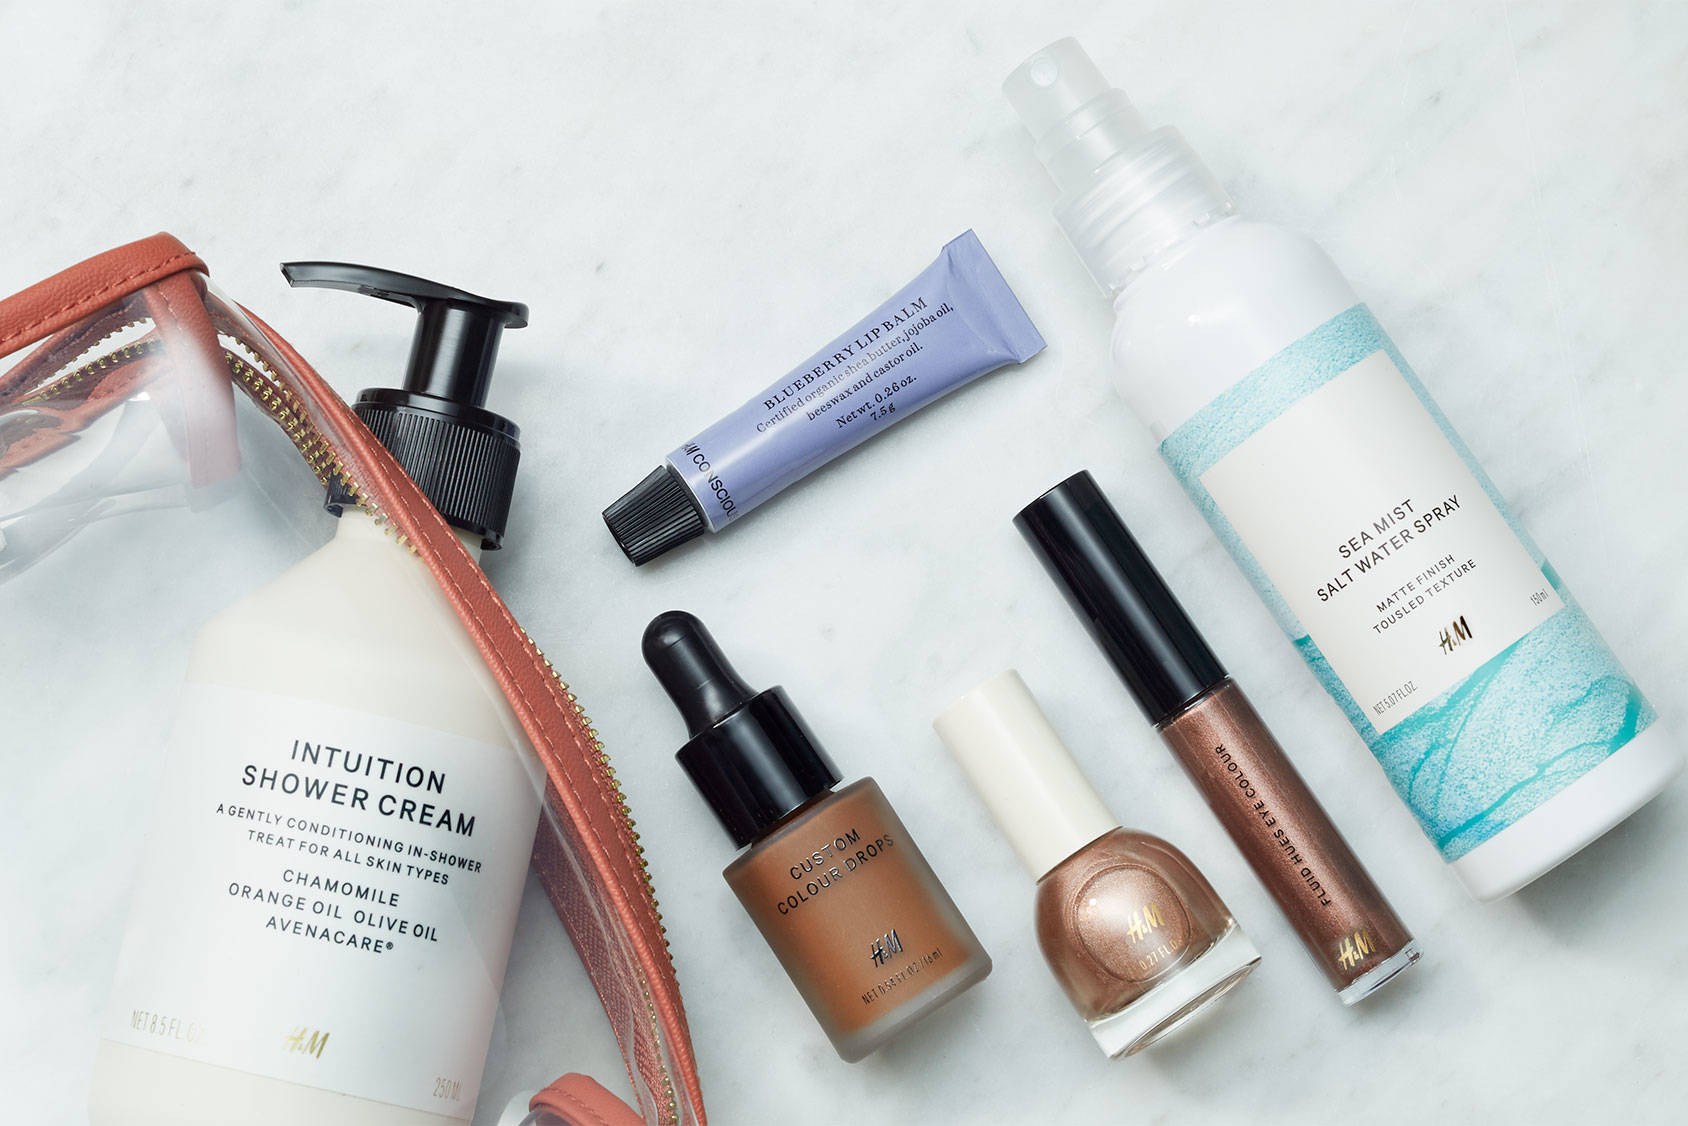 7 beauty buys we won't go on holiday without